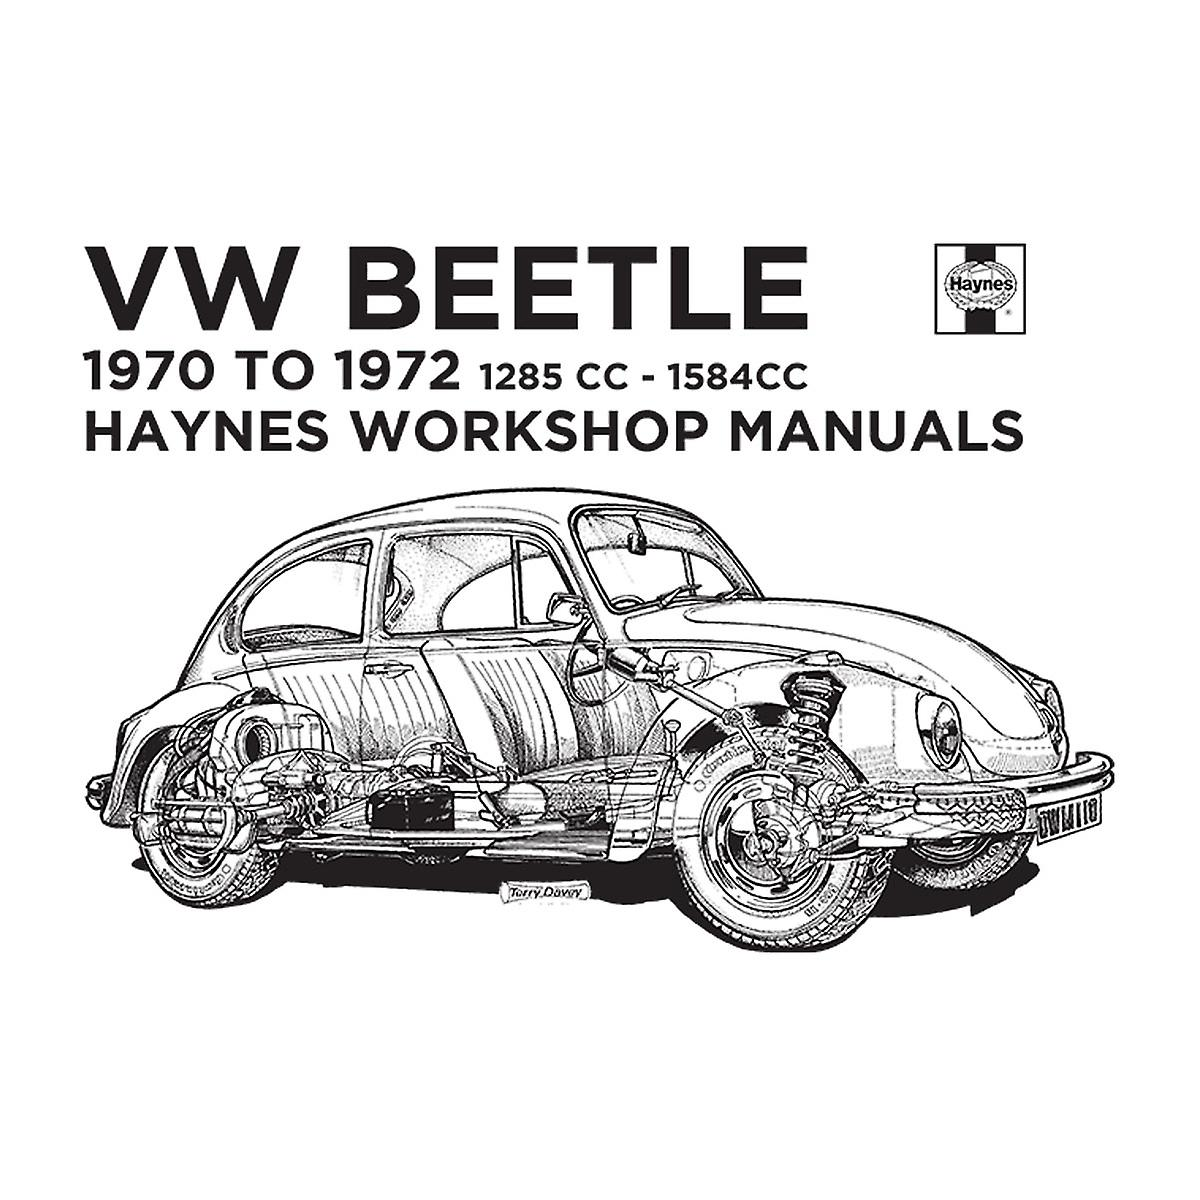 Haynes Workshop Manual VW Beetle 70 To 72 Black Women's